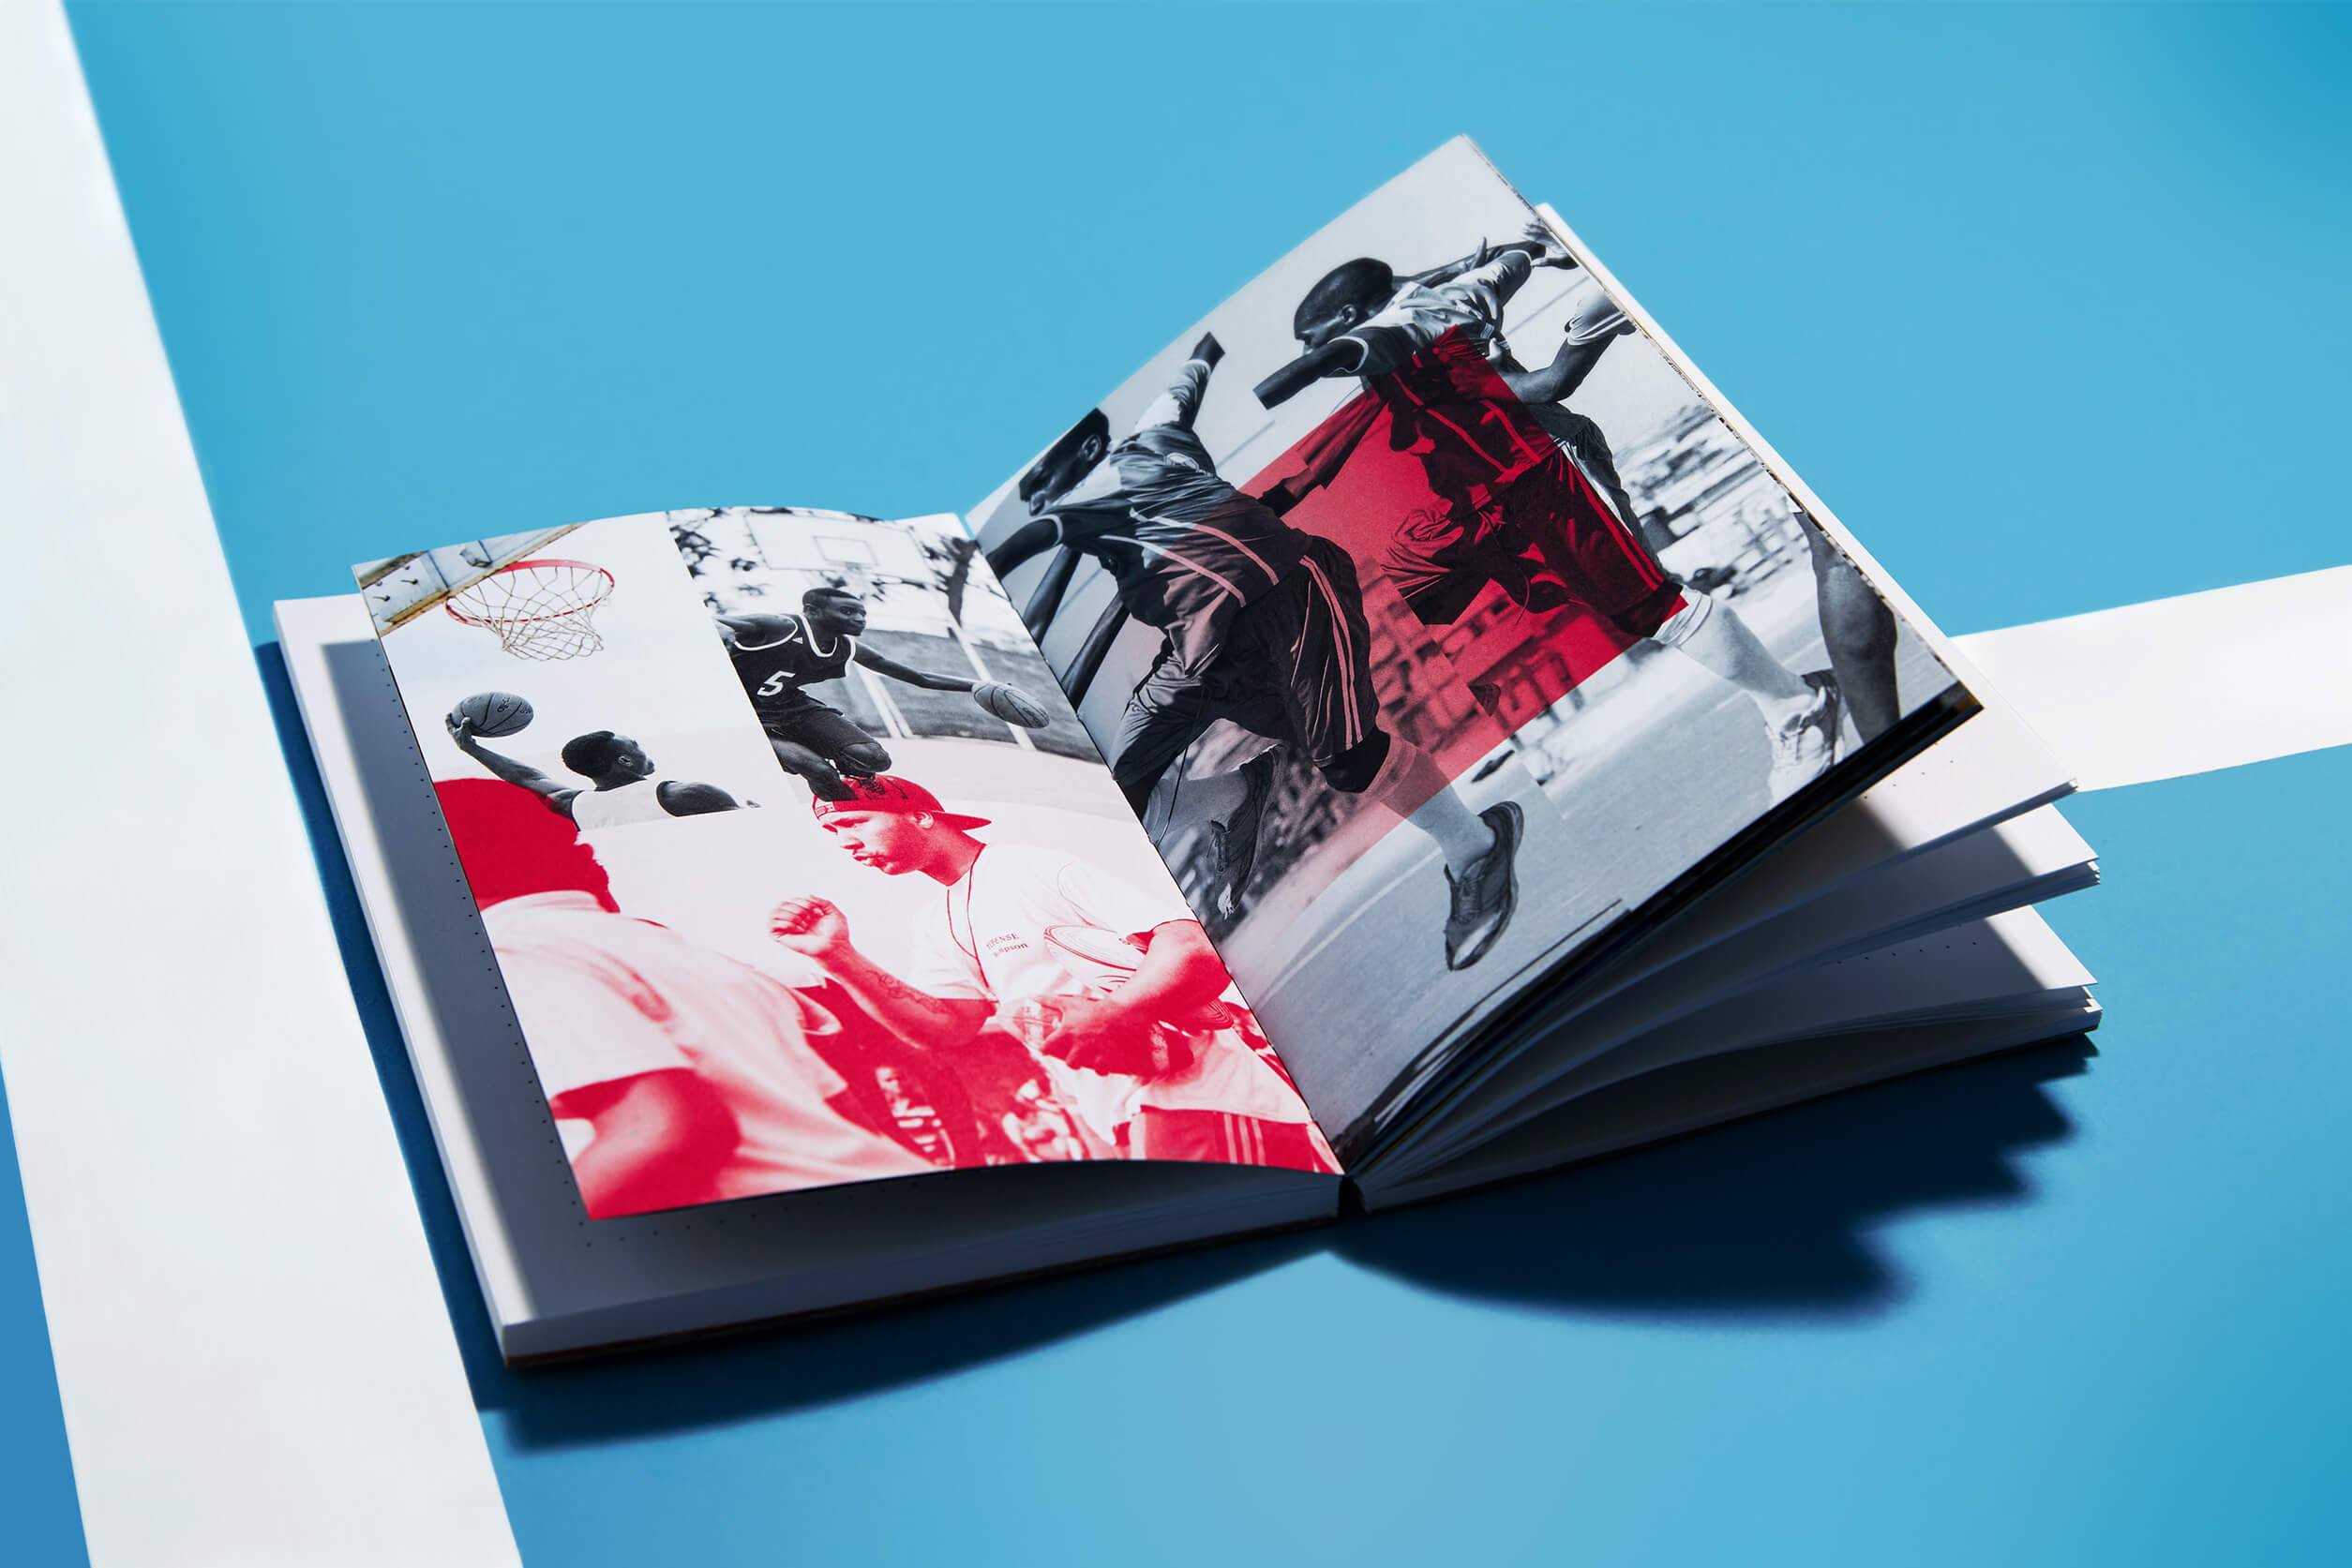 adidas idea book '15 – Nachhaltiges Corporate Notizbuch – Brand Communication, Corporate Publishing, Konzept und Design by ELLIJOT, Fotografiert von EyeCandy Berlin